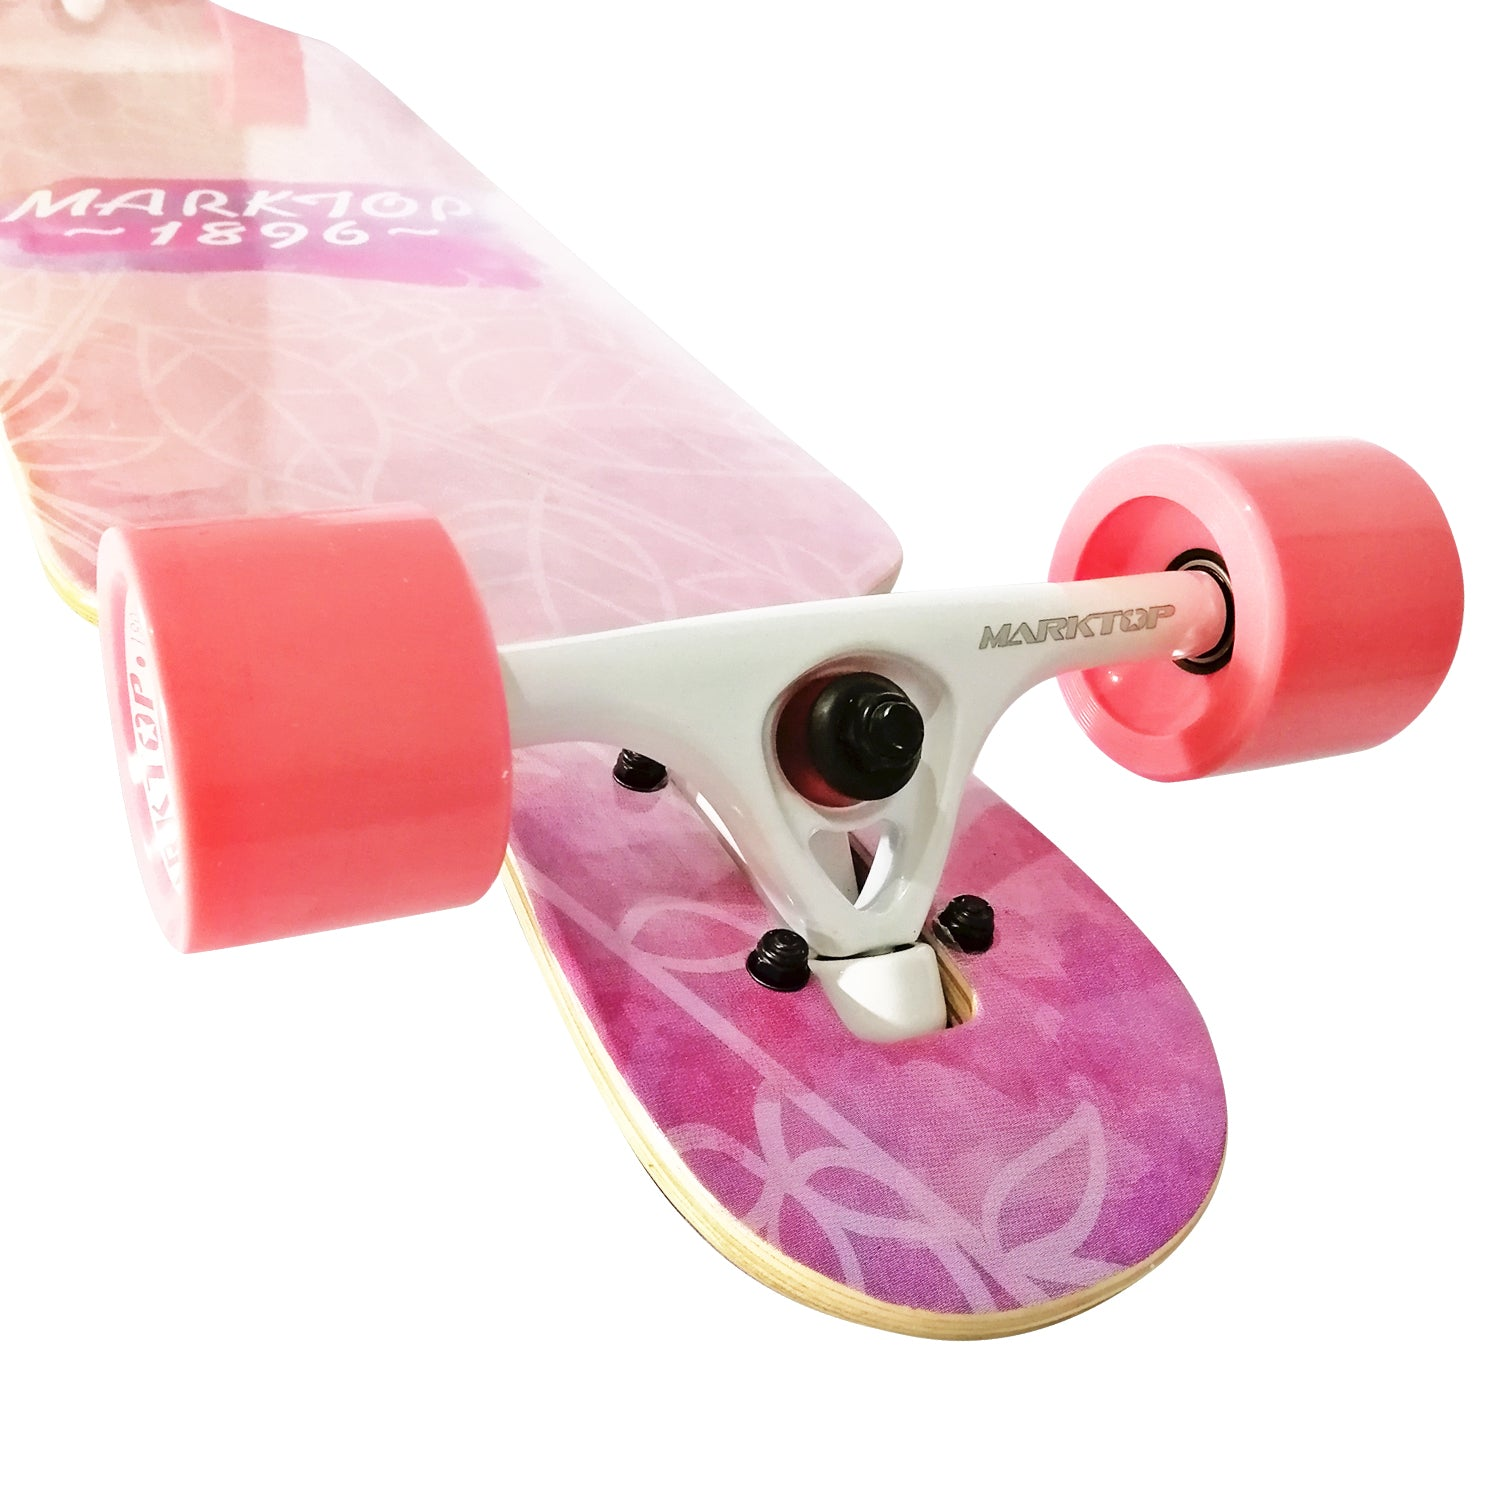 "Chaser 41"" Marktop 7-Ply 1896 Maple Wood Longboard-Daydream Pink"